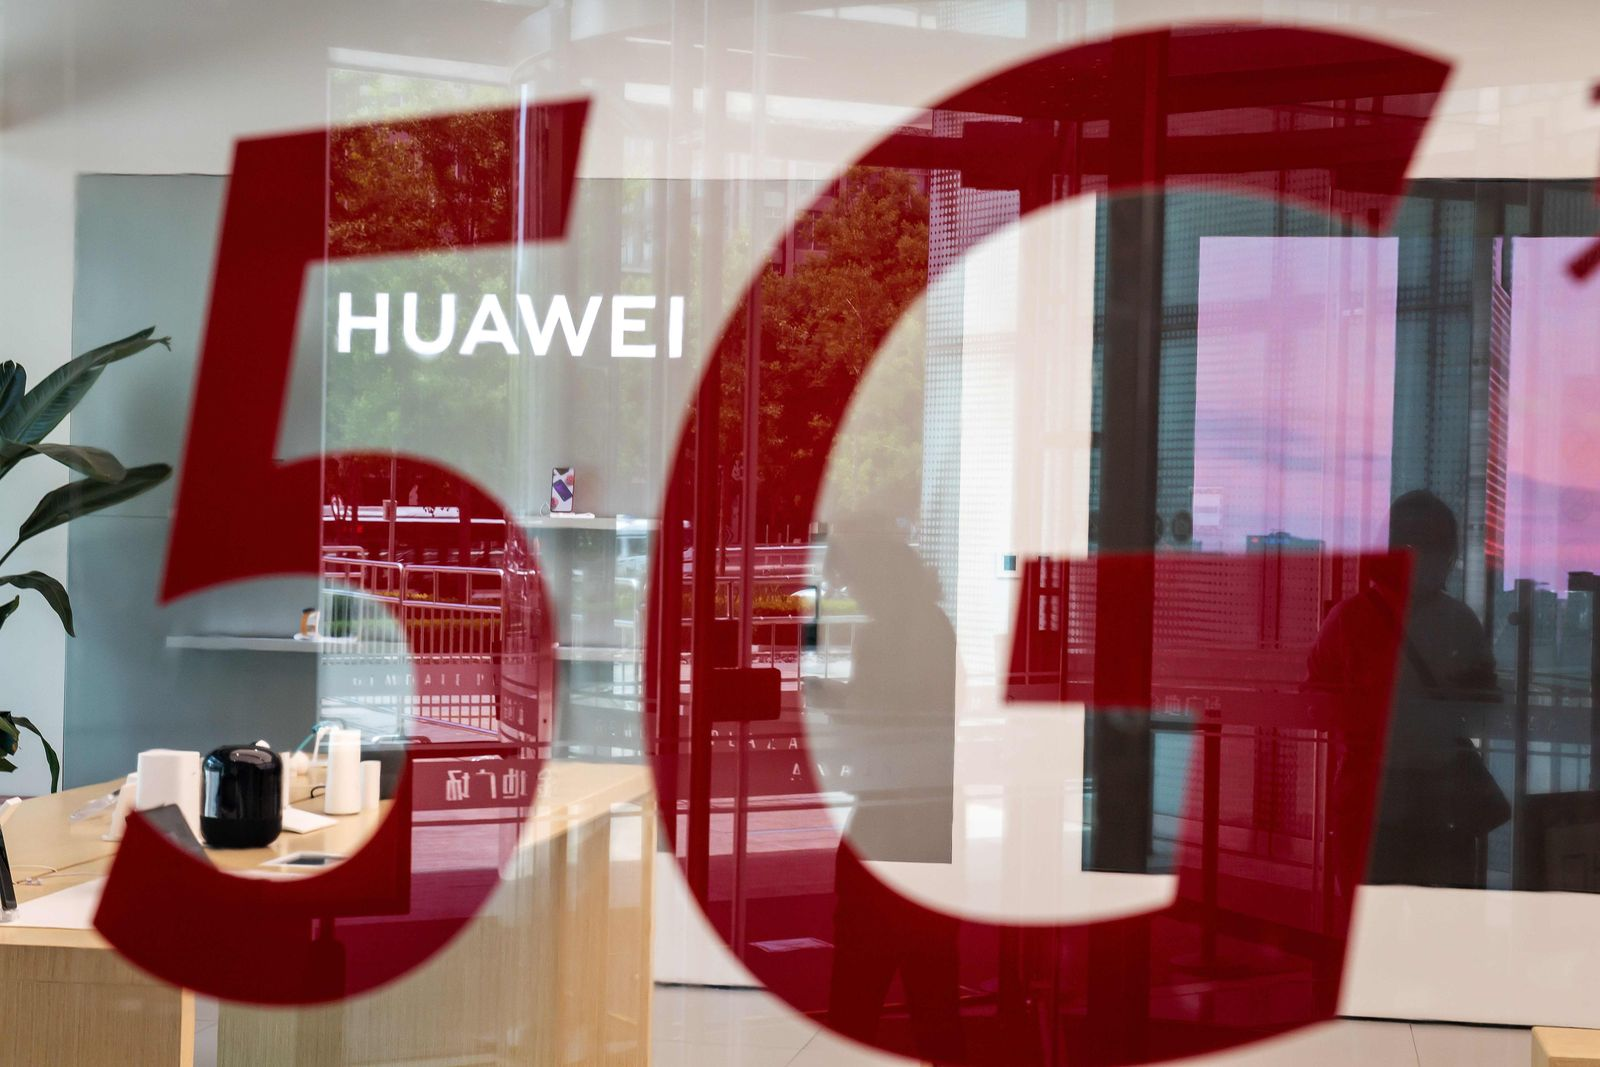 FILES-CHINA-FRANCE-TELECOMS-REGULATIONS-SECURITY-HUAWEI